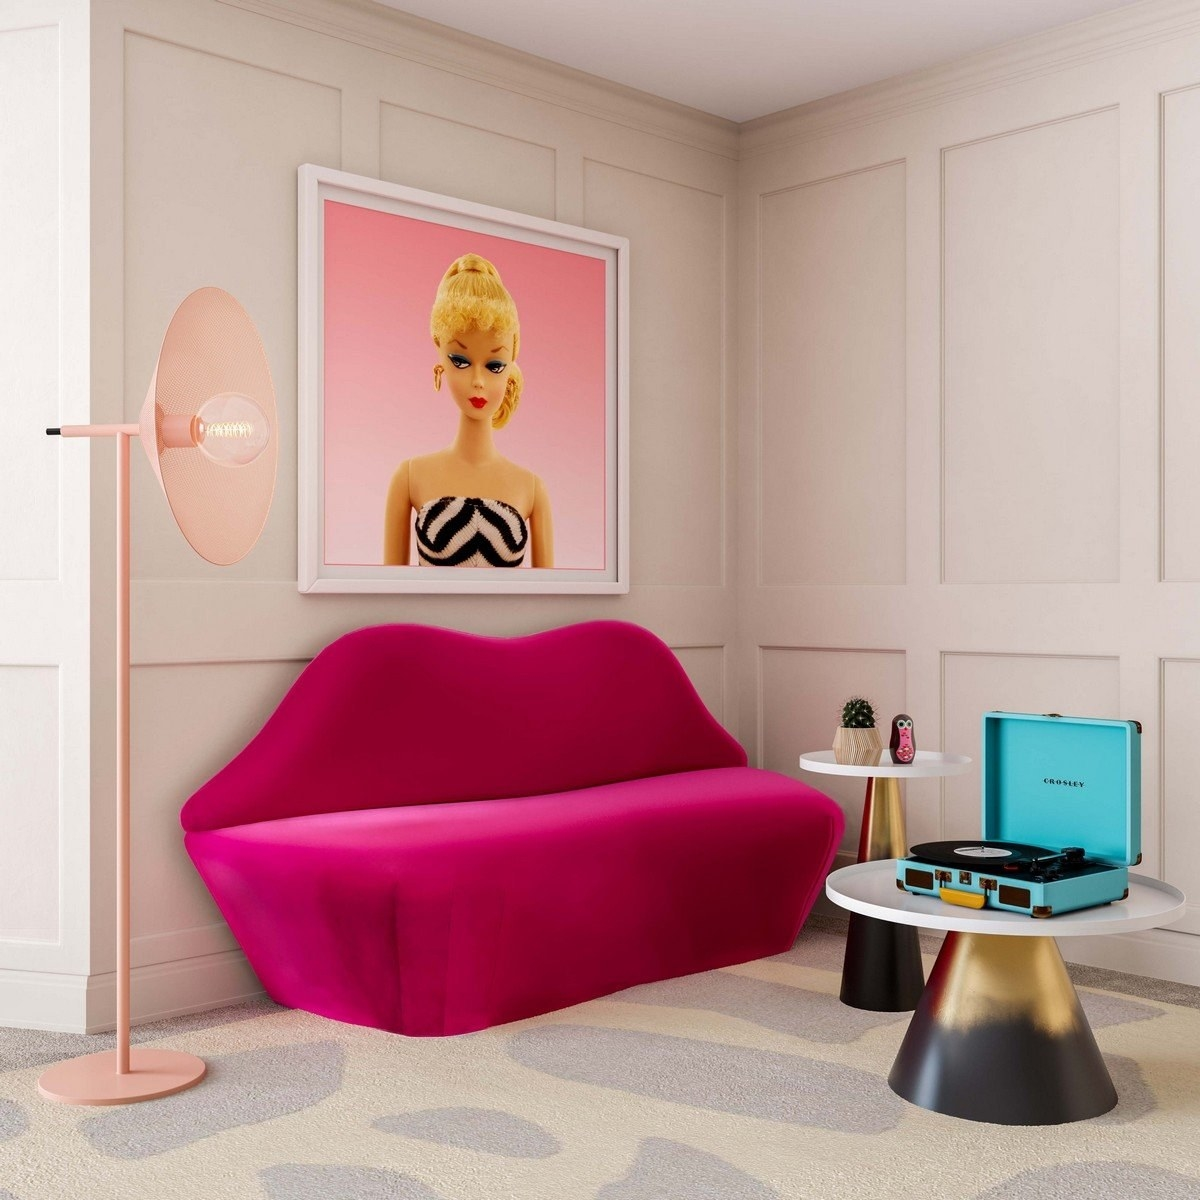 the pink lip-shaped sofa